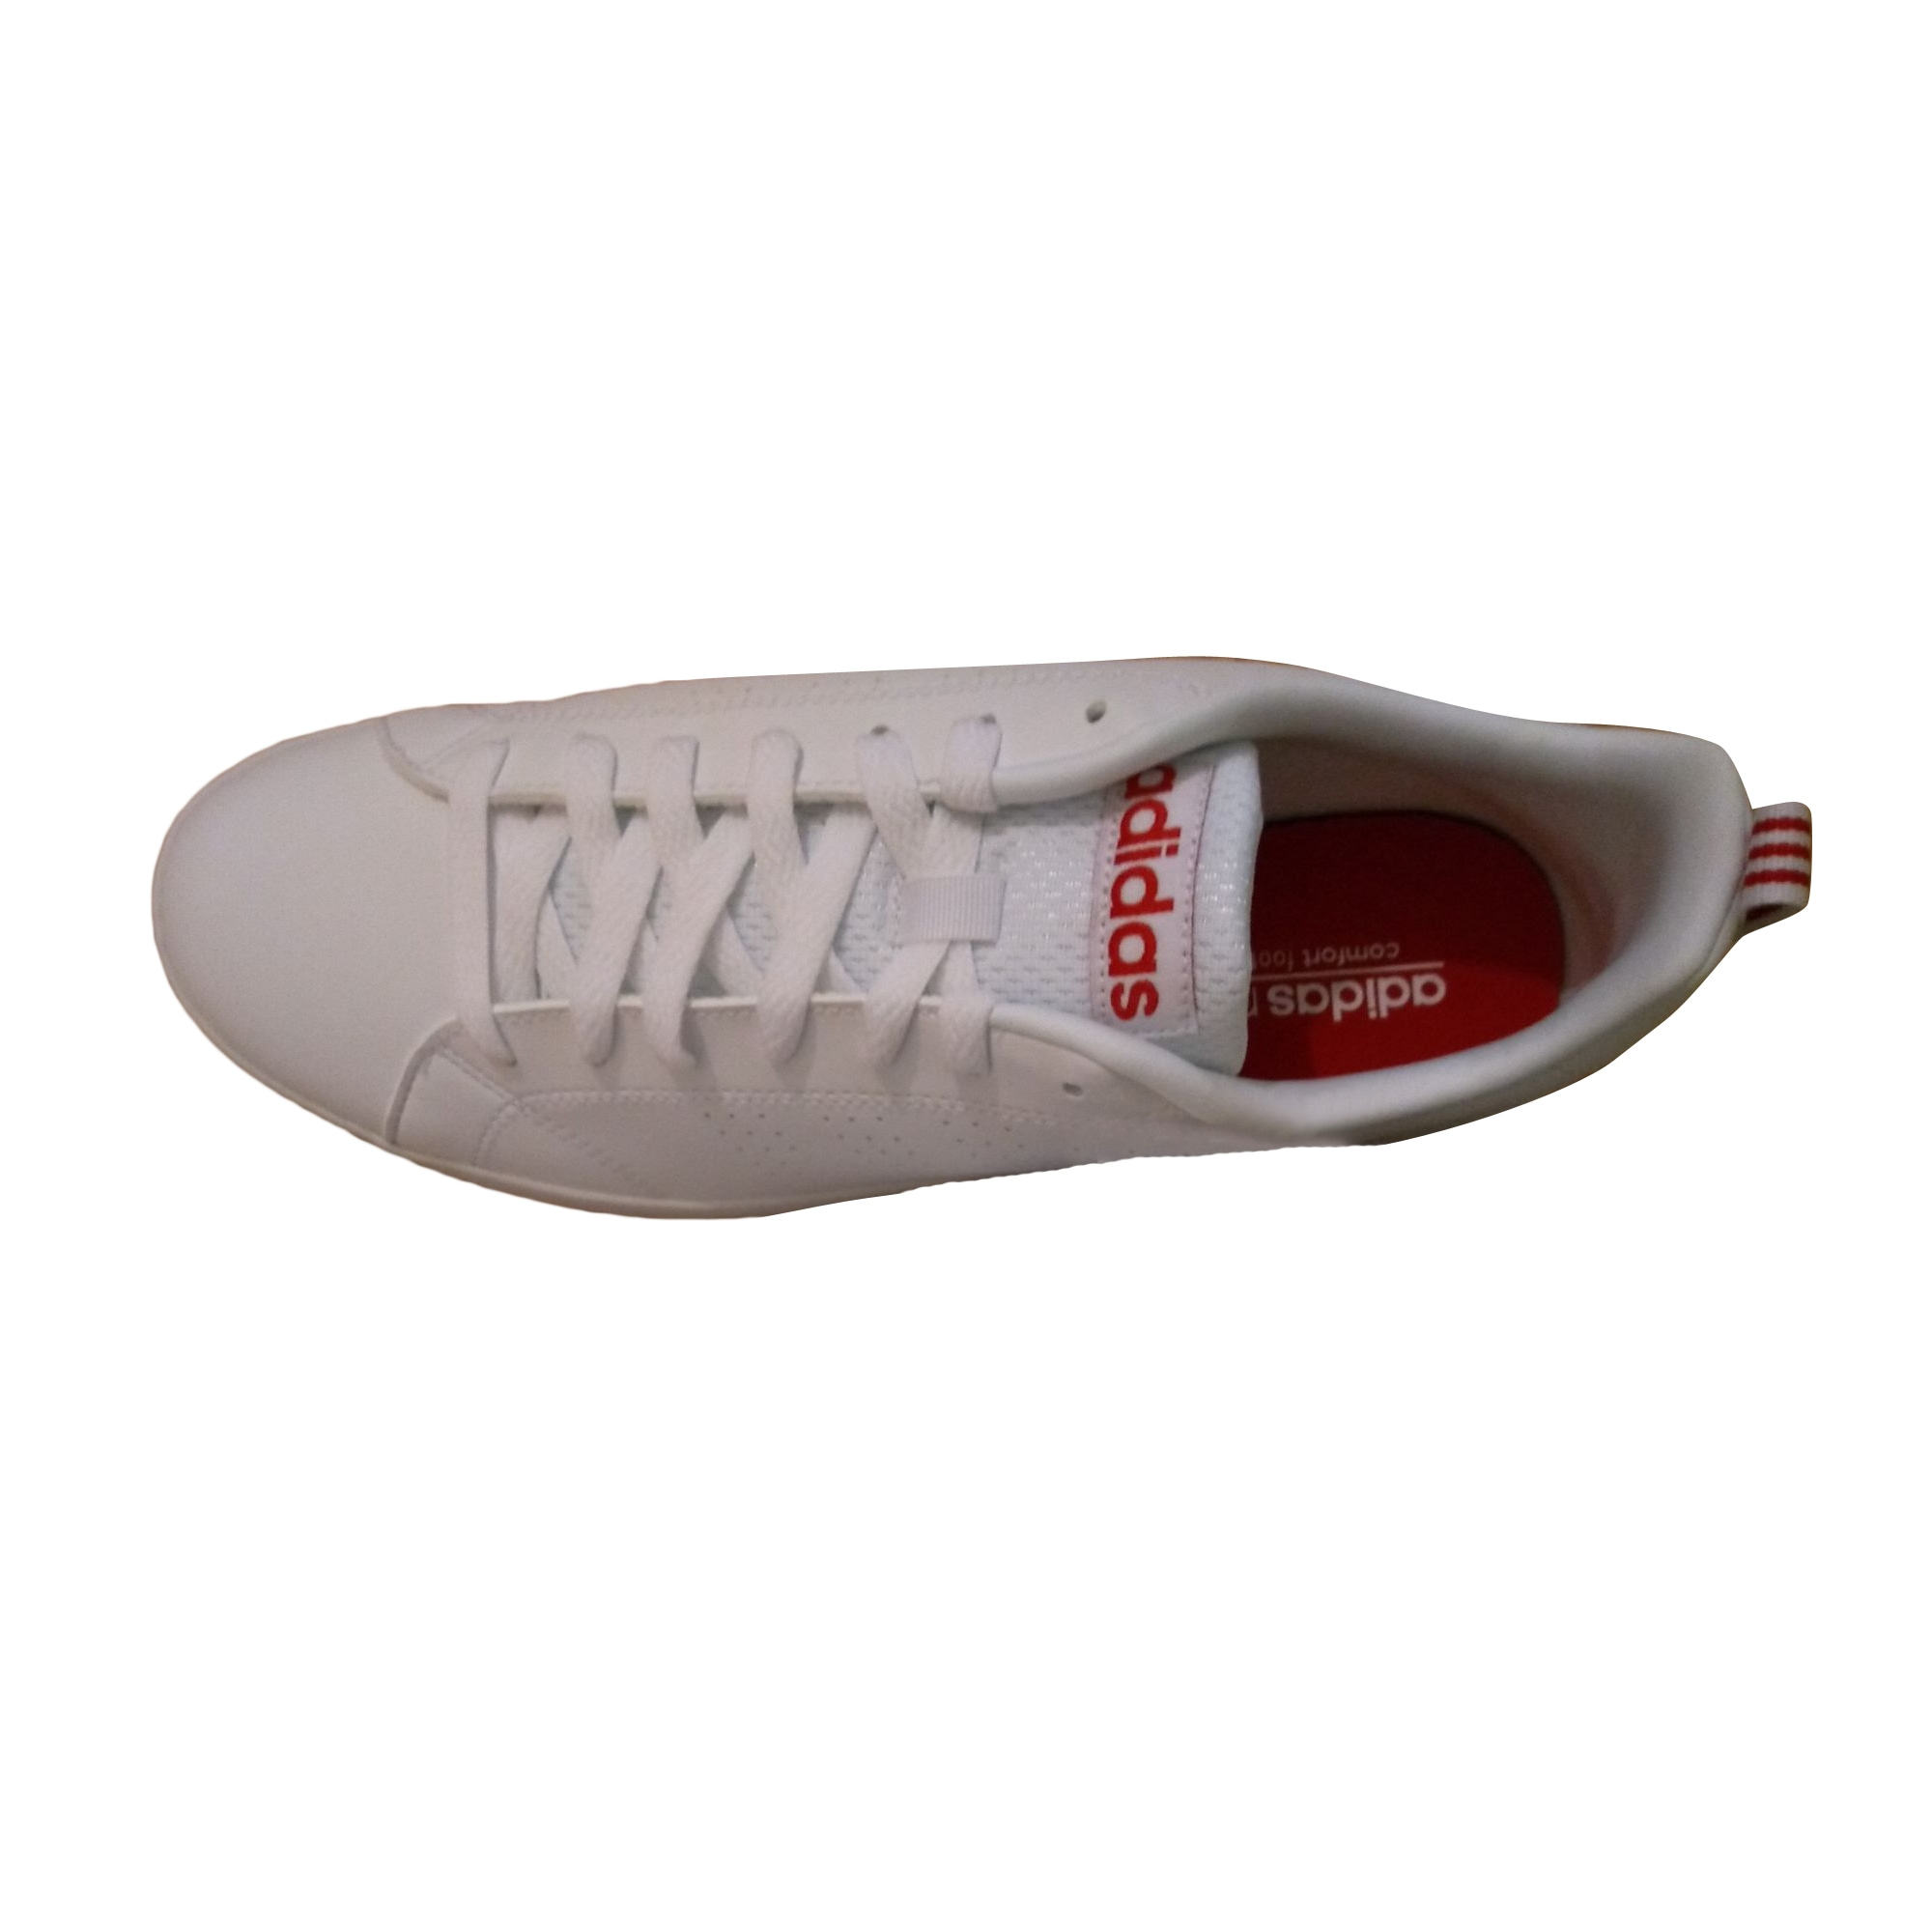 Sneakers ADIDAS White, off-white, ecru